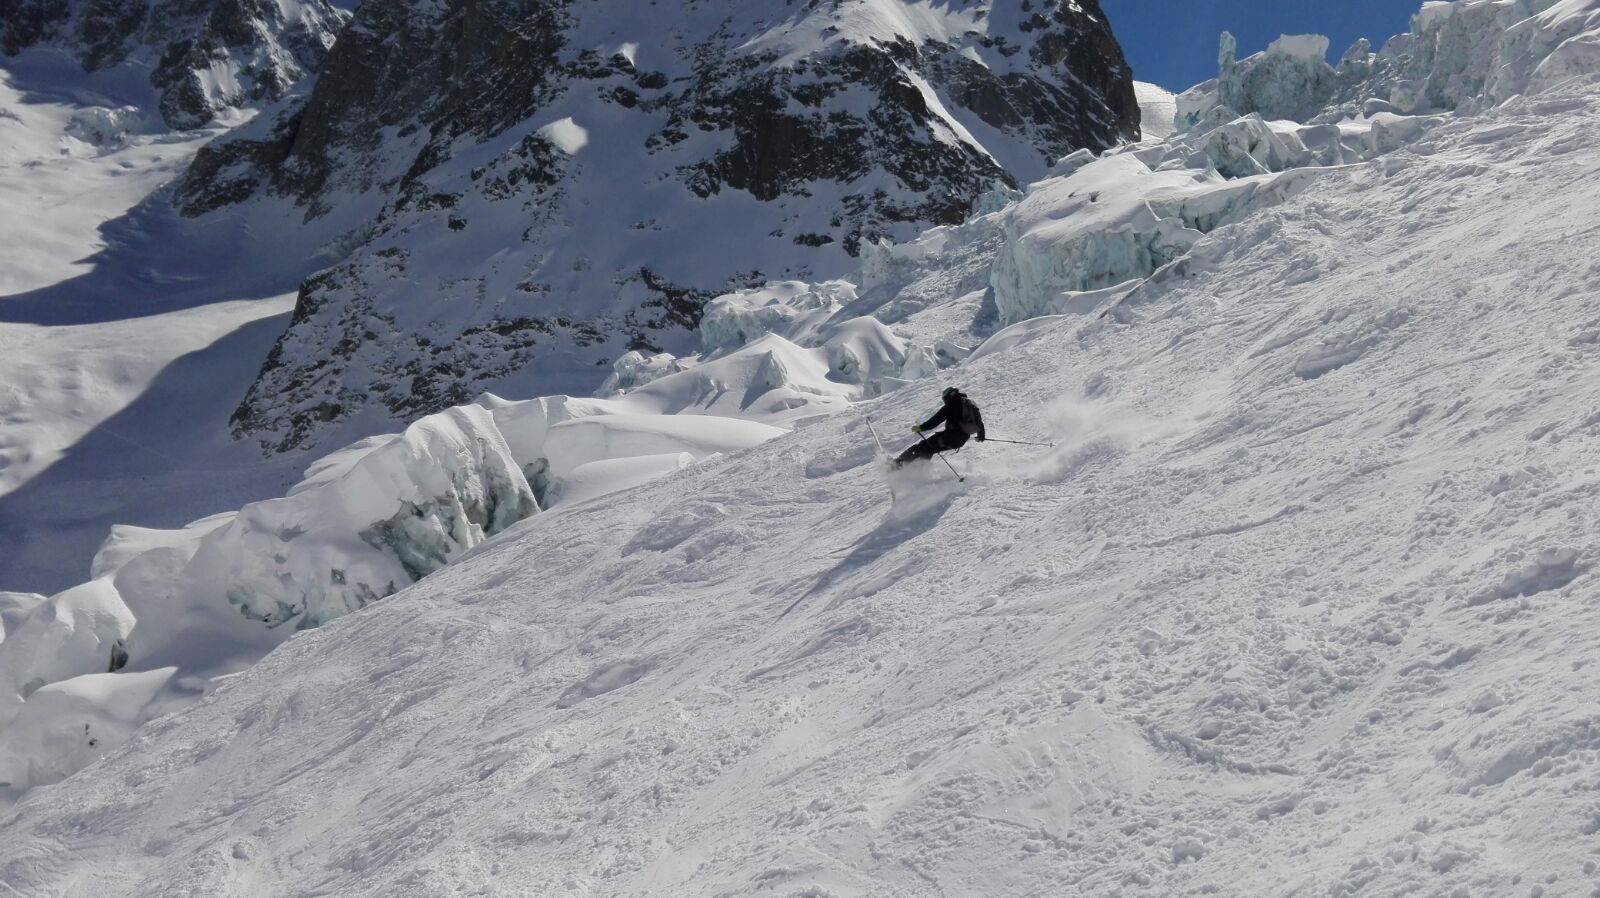 vallee blanche guide alpine proup (7)